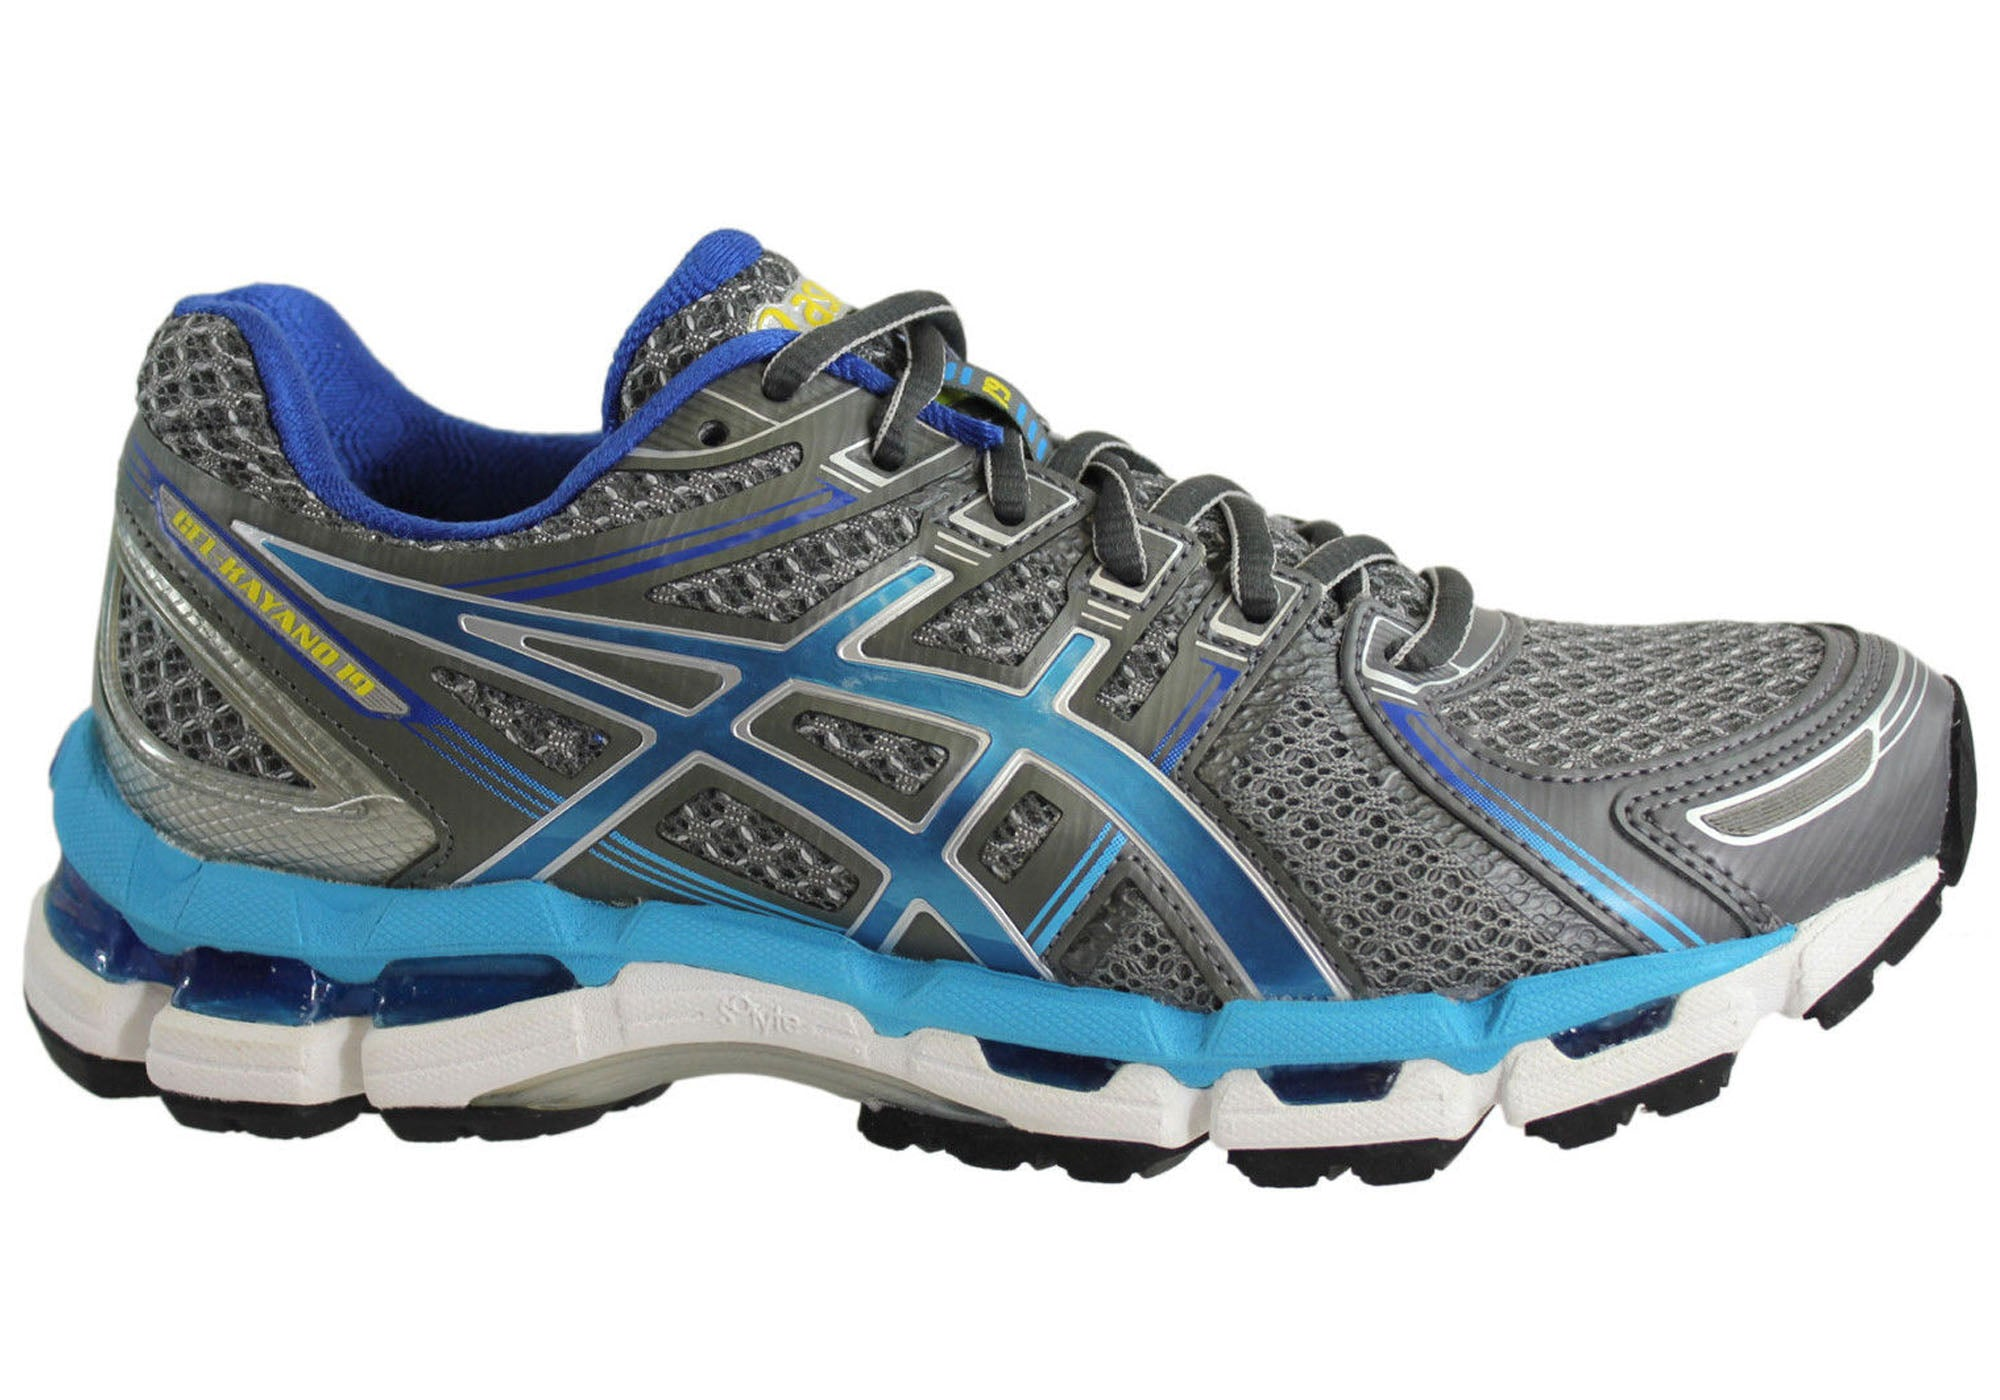 385f50725992 Home Asics Gel Kayano 19 Womens Premium Cushioned Sport Running Shoes.  Lightning Turquoise  ...